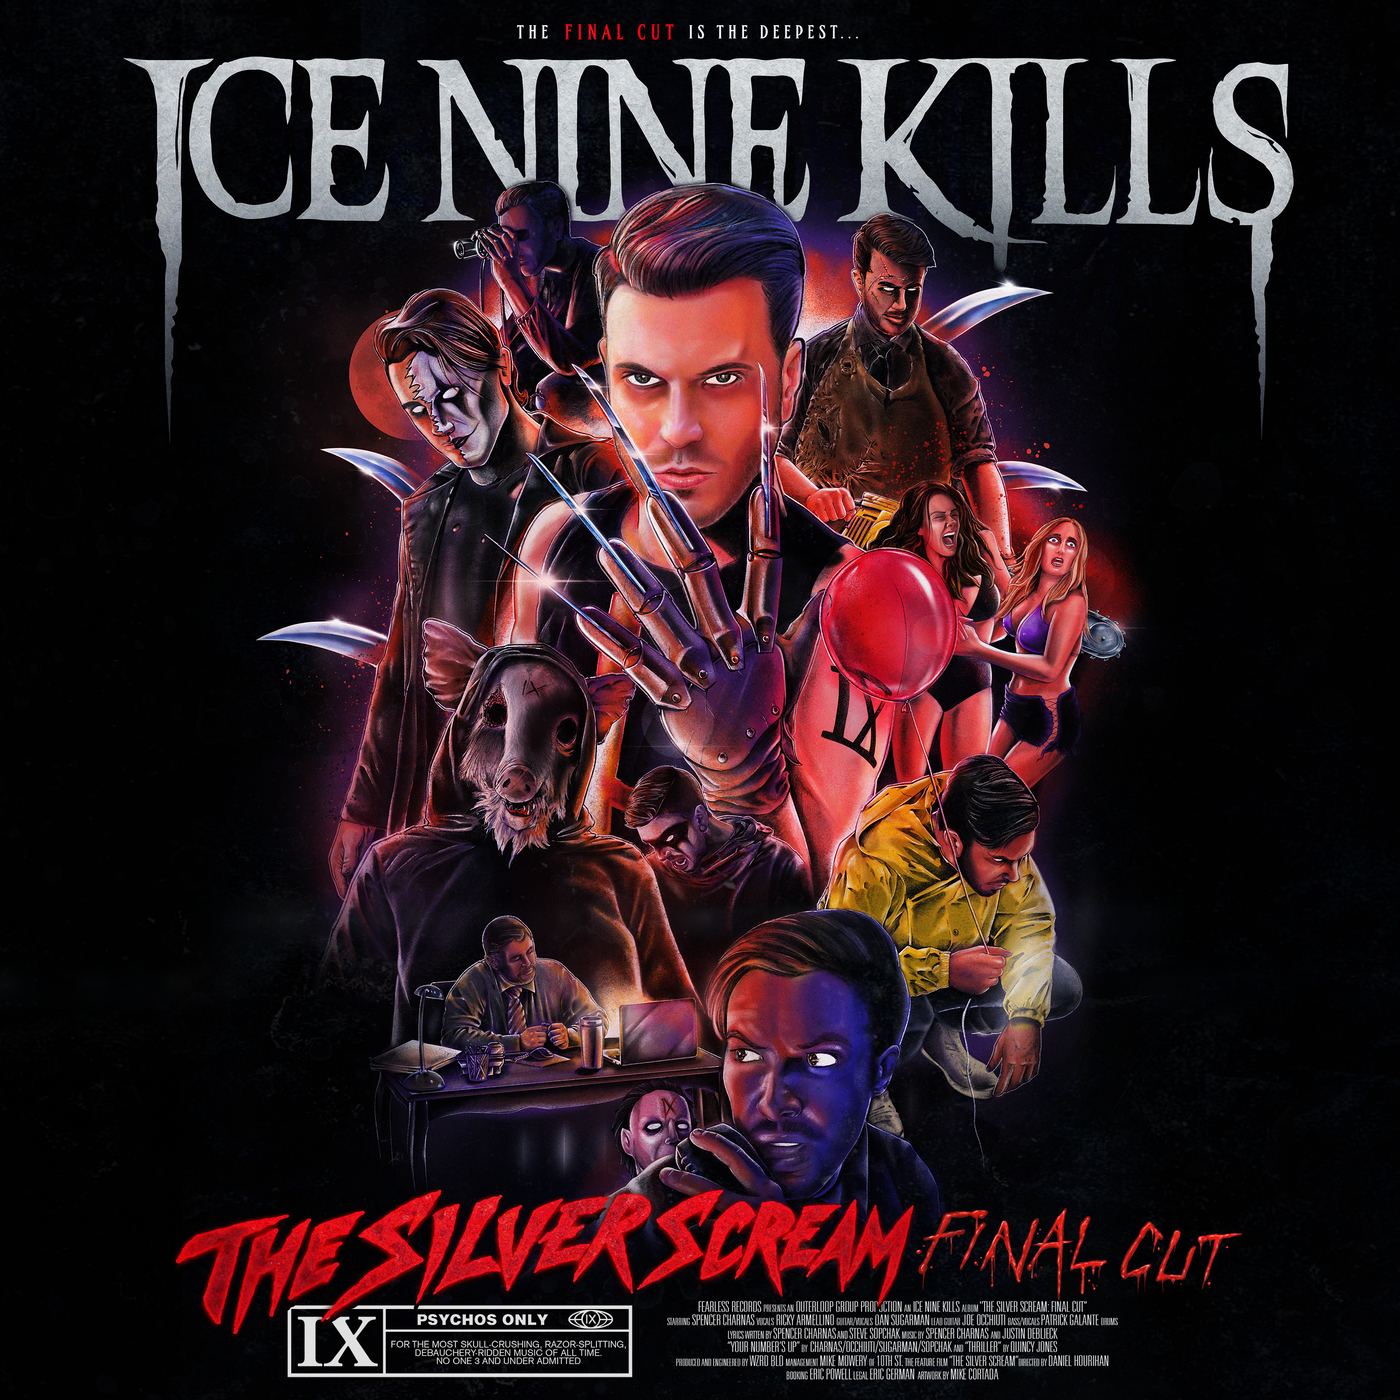 Ice Nine Kills - The Silver Scream (Final Cut) (2019)